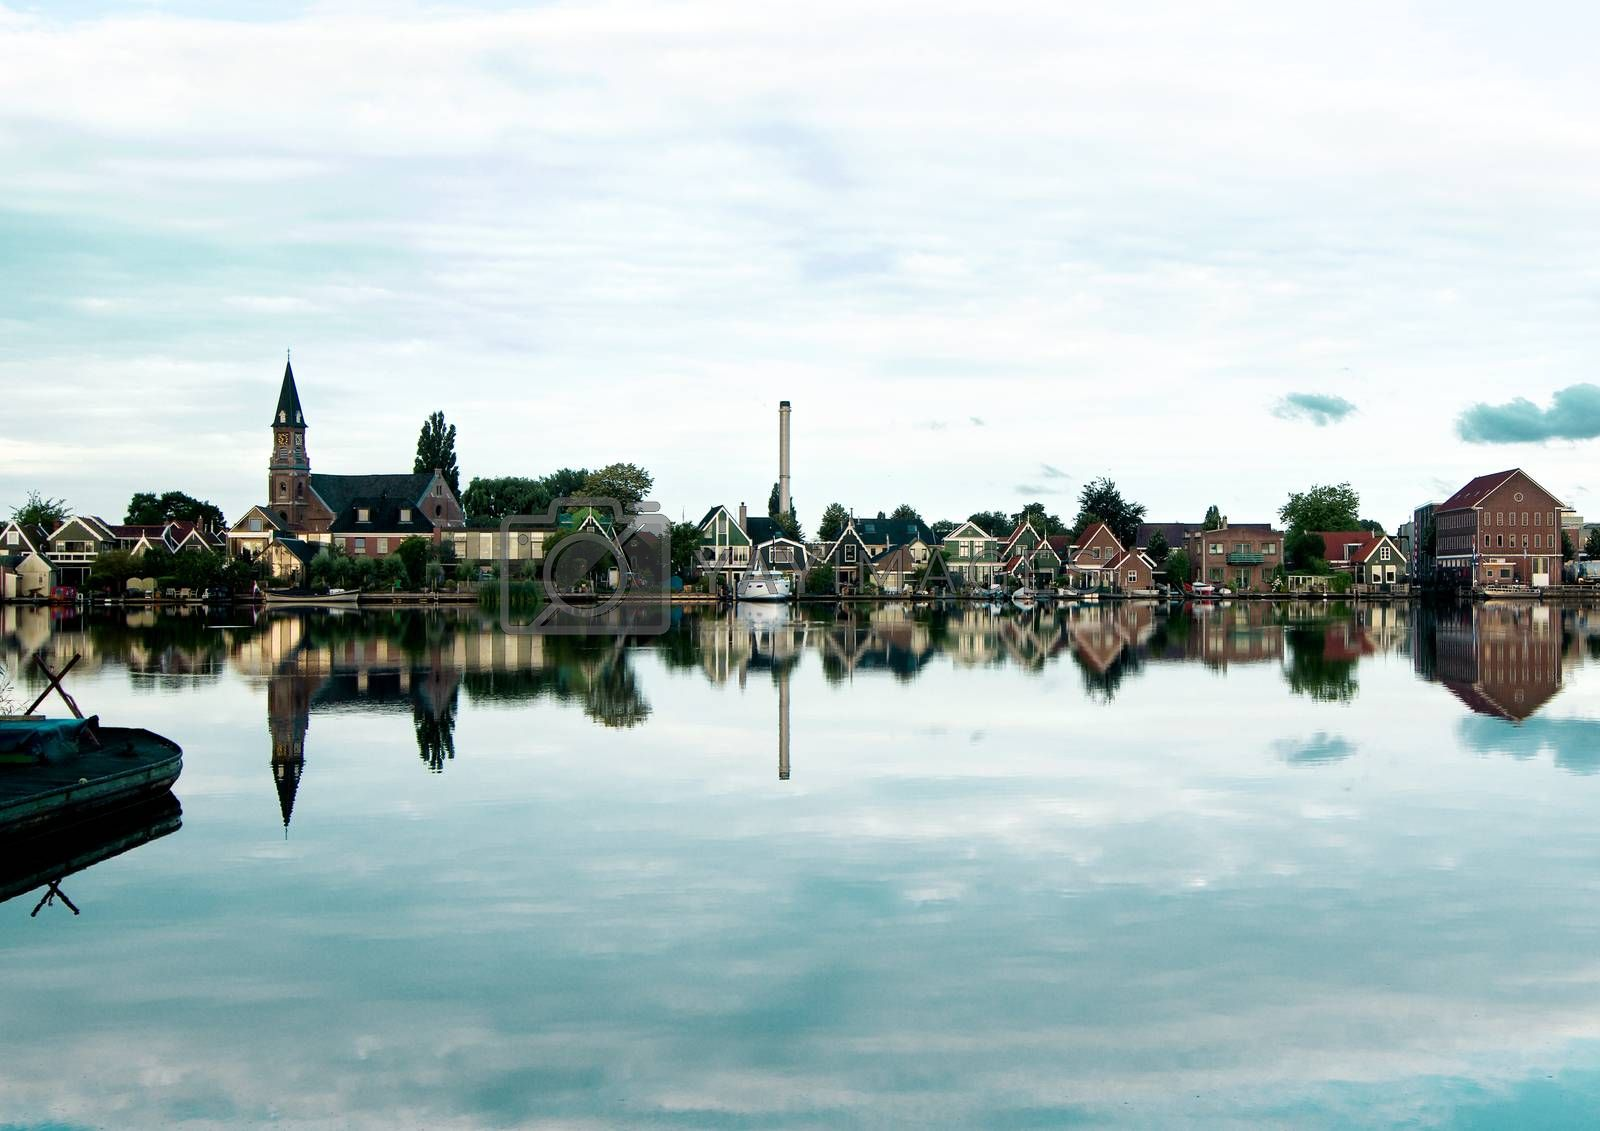 Houses and Church of Zaanse Schans on River Coast with Reflection Early Morning Outdoors. Netherlands